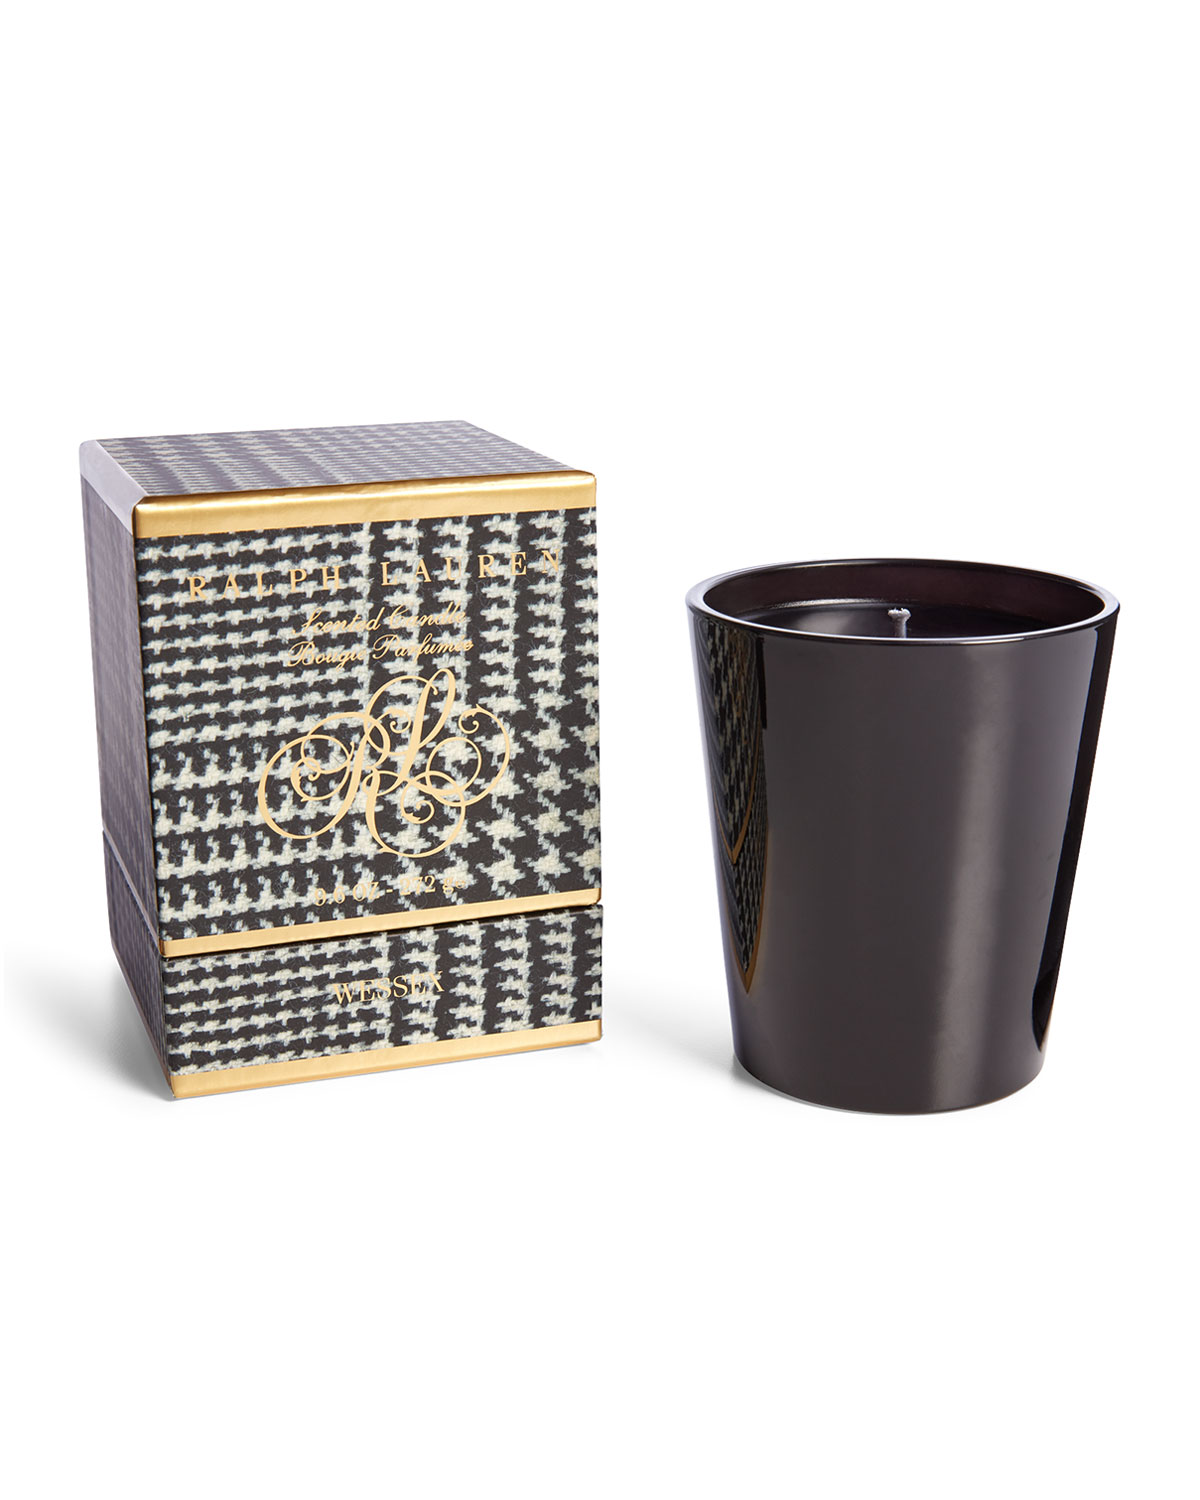 Ralph Lauren Home Candles WESSEX SINGLE-WICK CANDLE